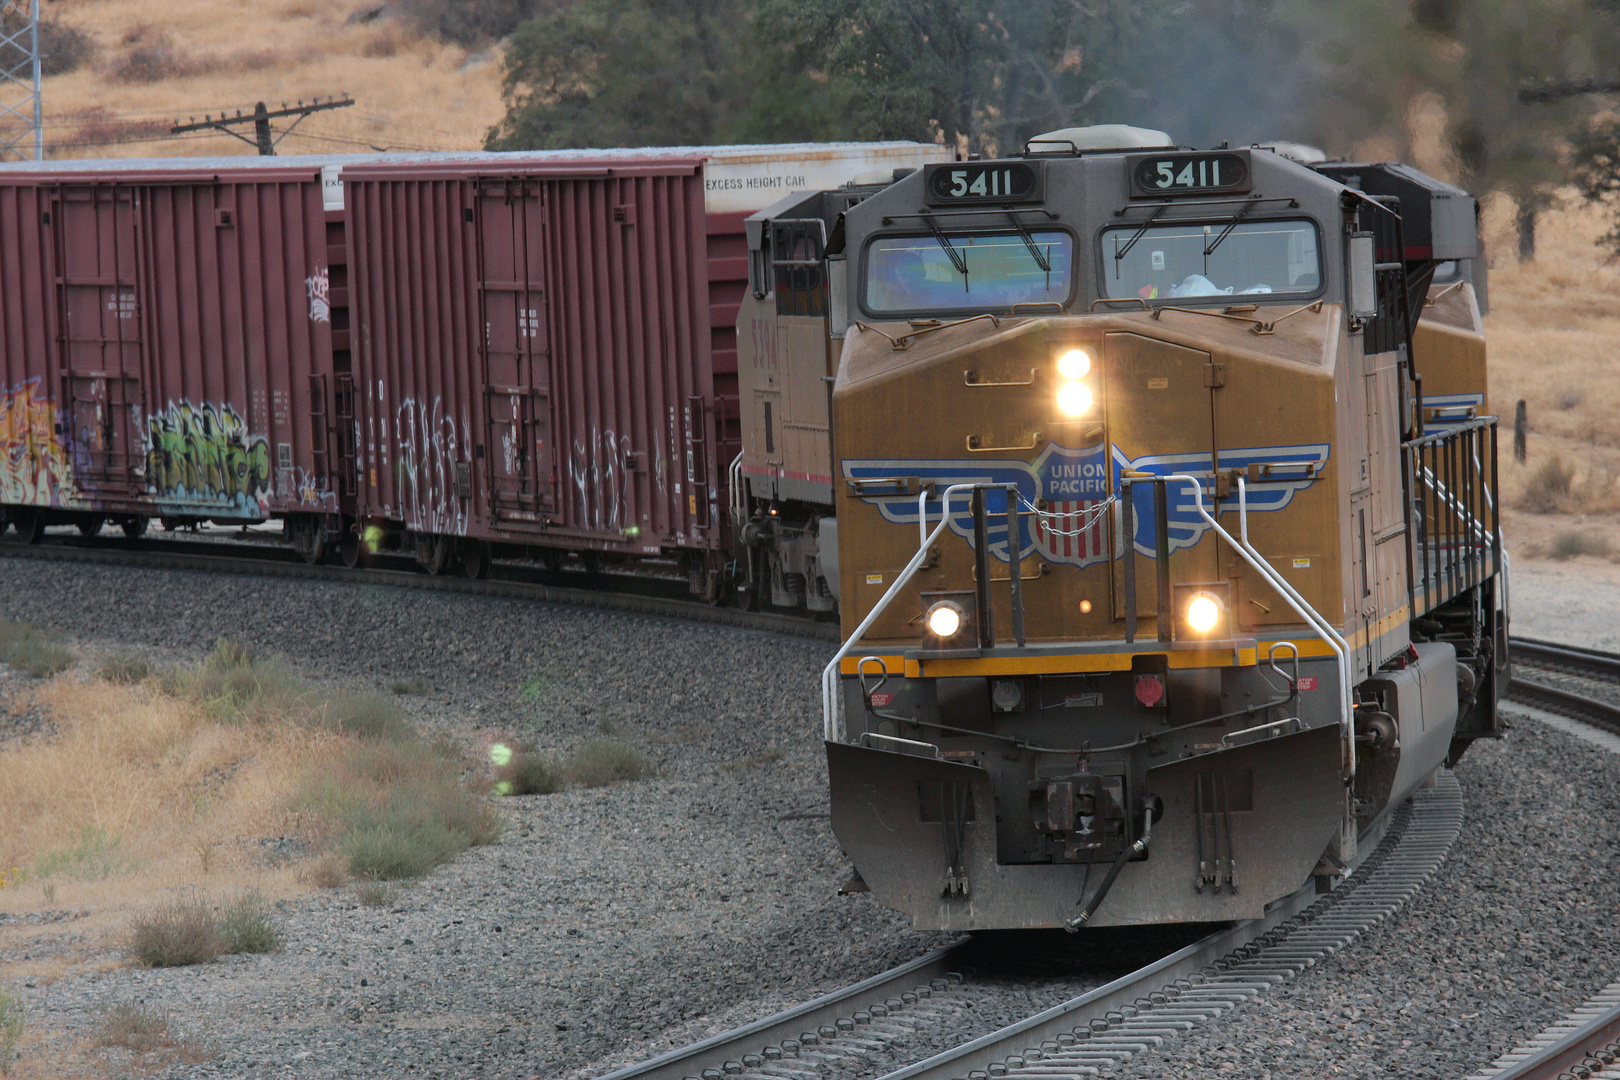 Union Pacific am Tehachapi Loop... UP #5411 leading a Westbound Freight Train